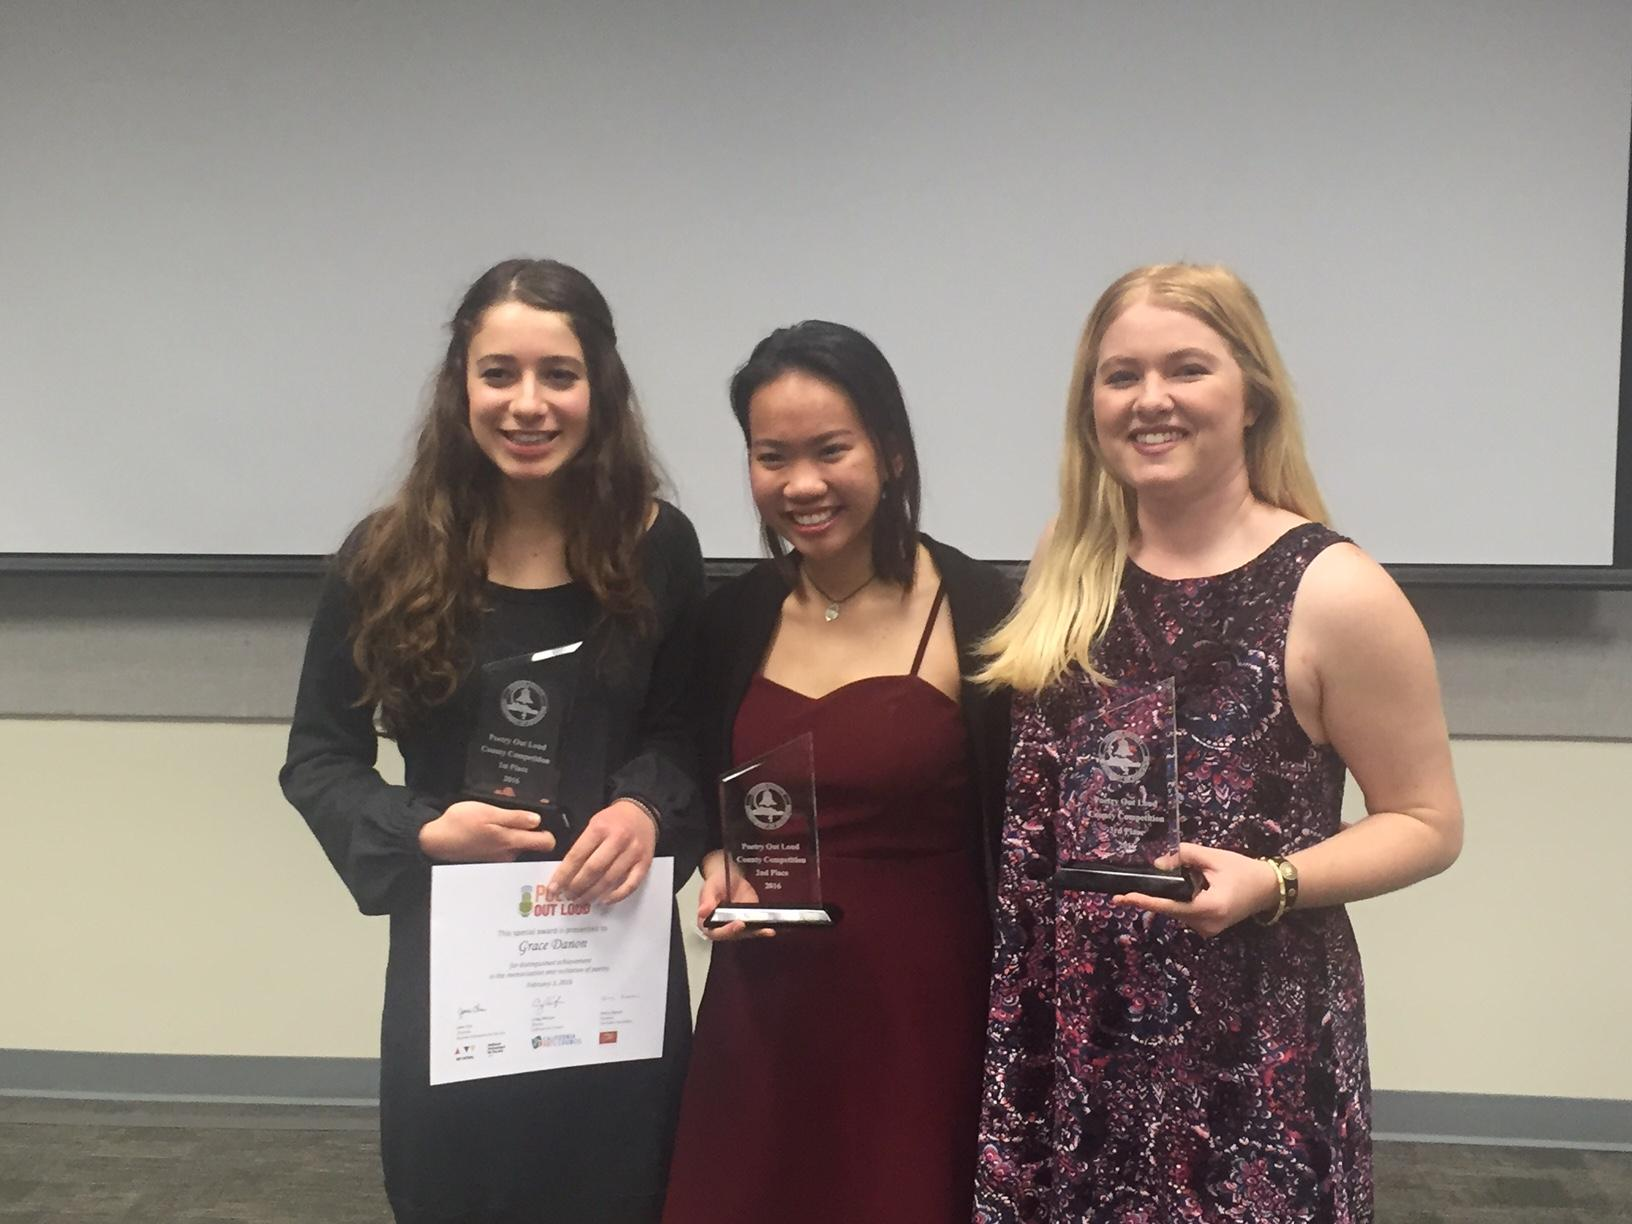 (From left to right.) Grace Danon (first place), Jane Huynh (second place), and Kat Delaney (third place).